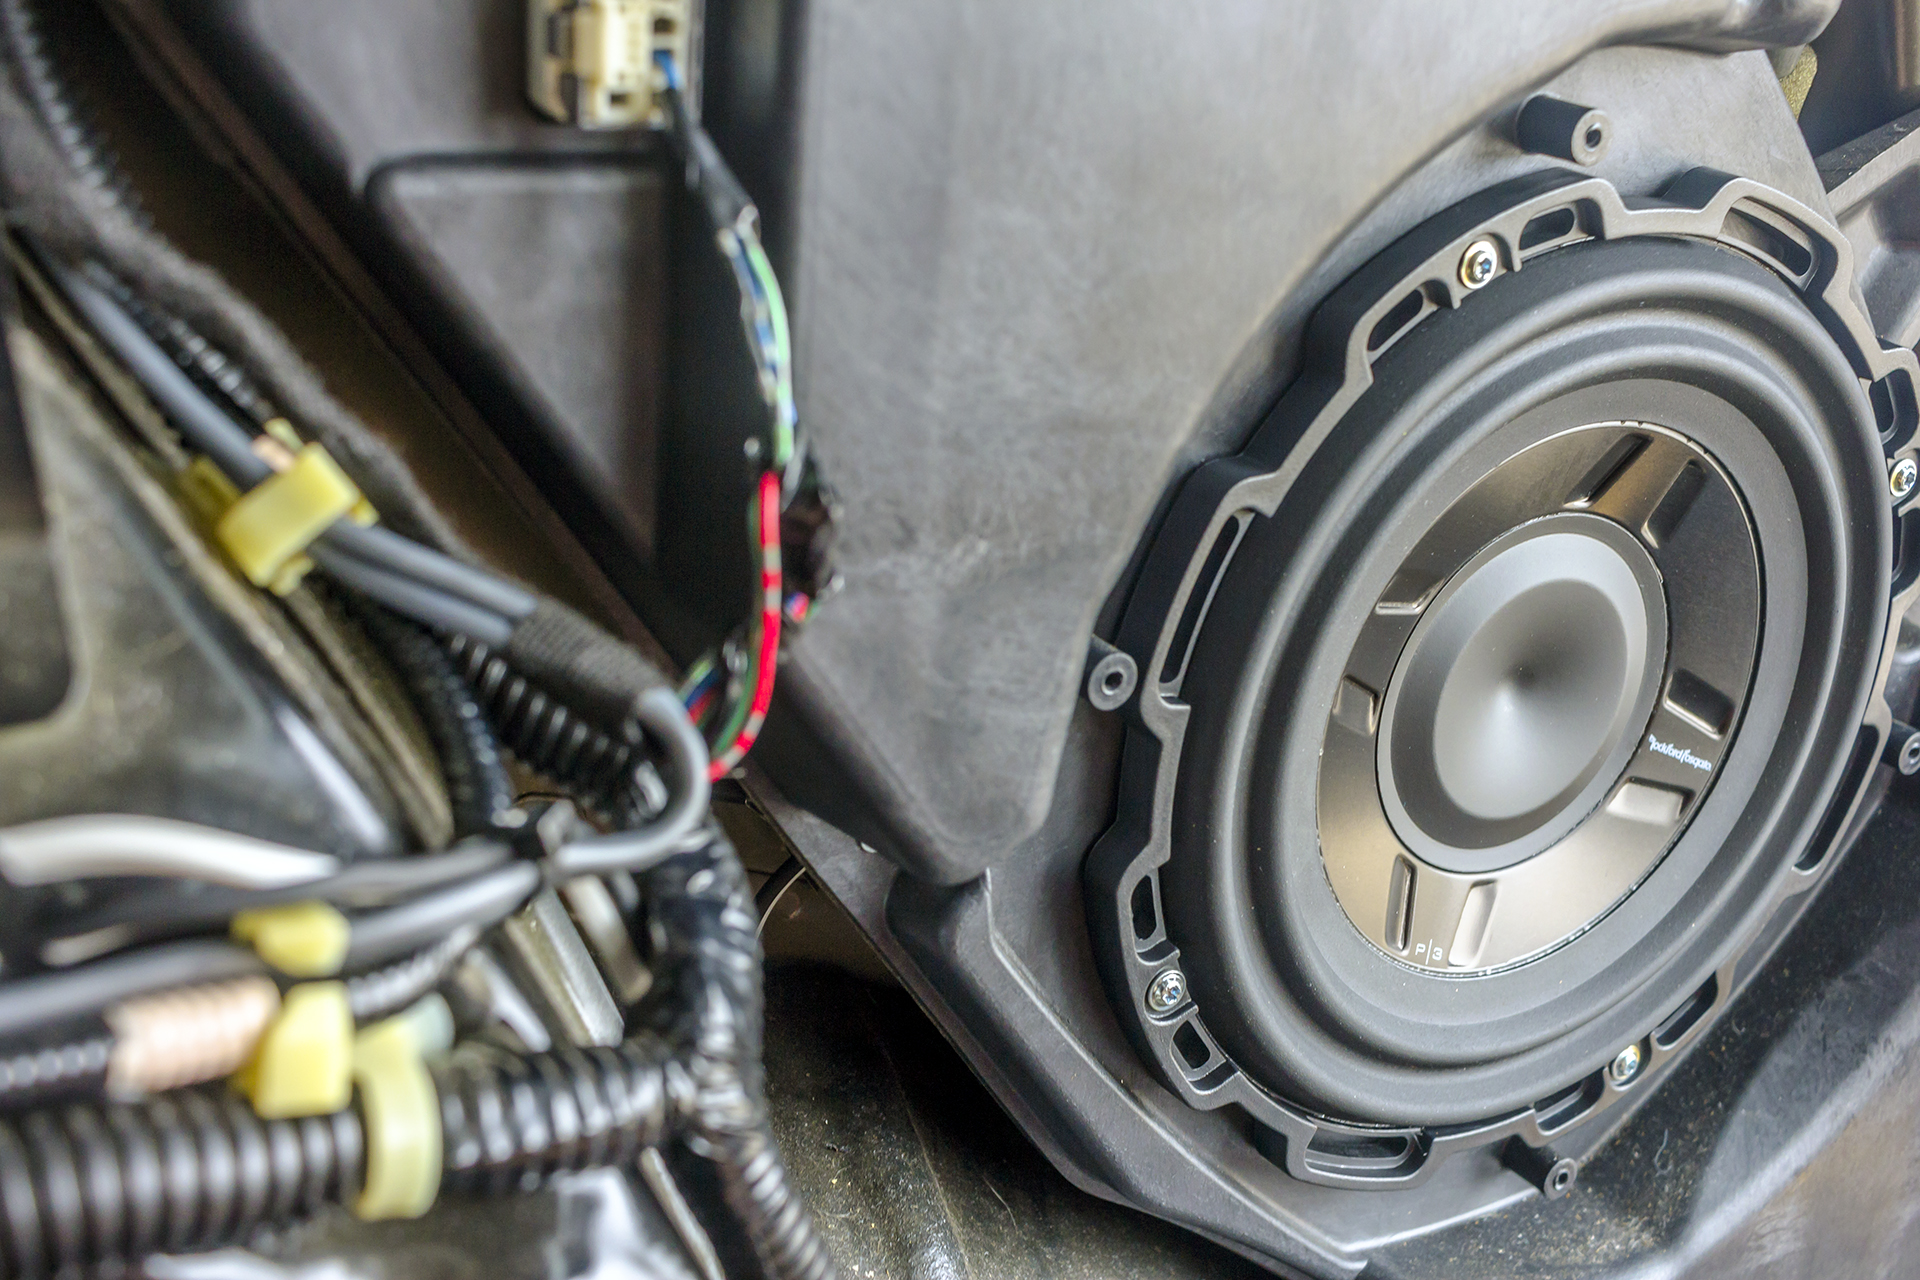 This 2007 Acura RDX Turbo gets some new speakers and a subwoofer!